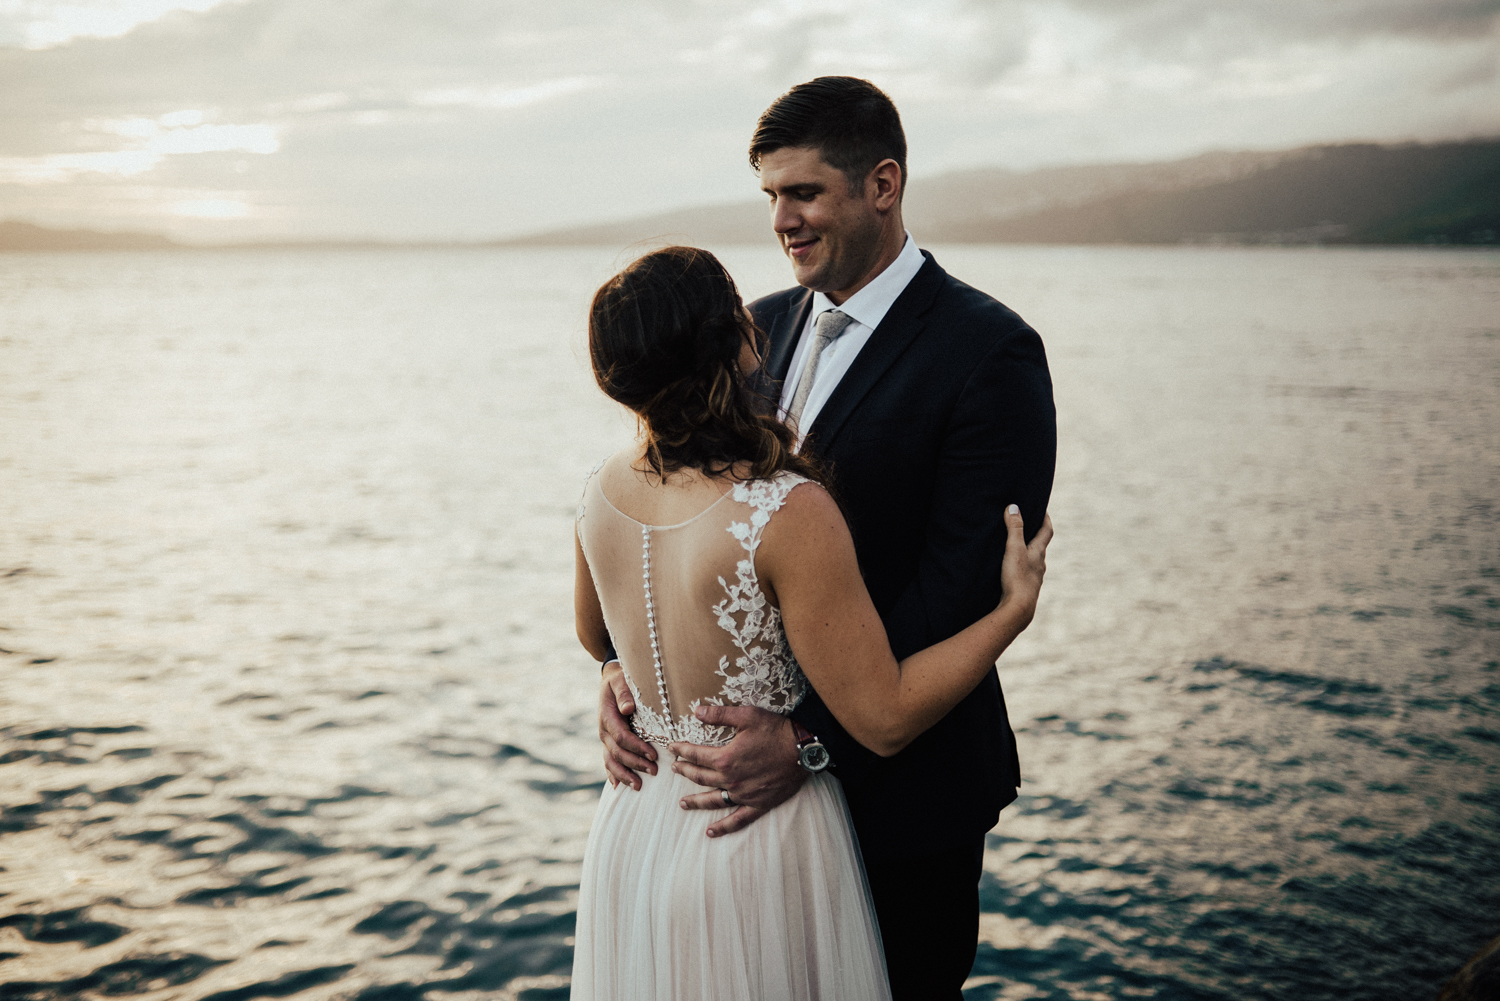 adventurous-Hawaii-elopement-photographers-70.jpg